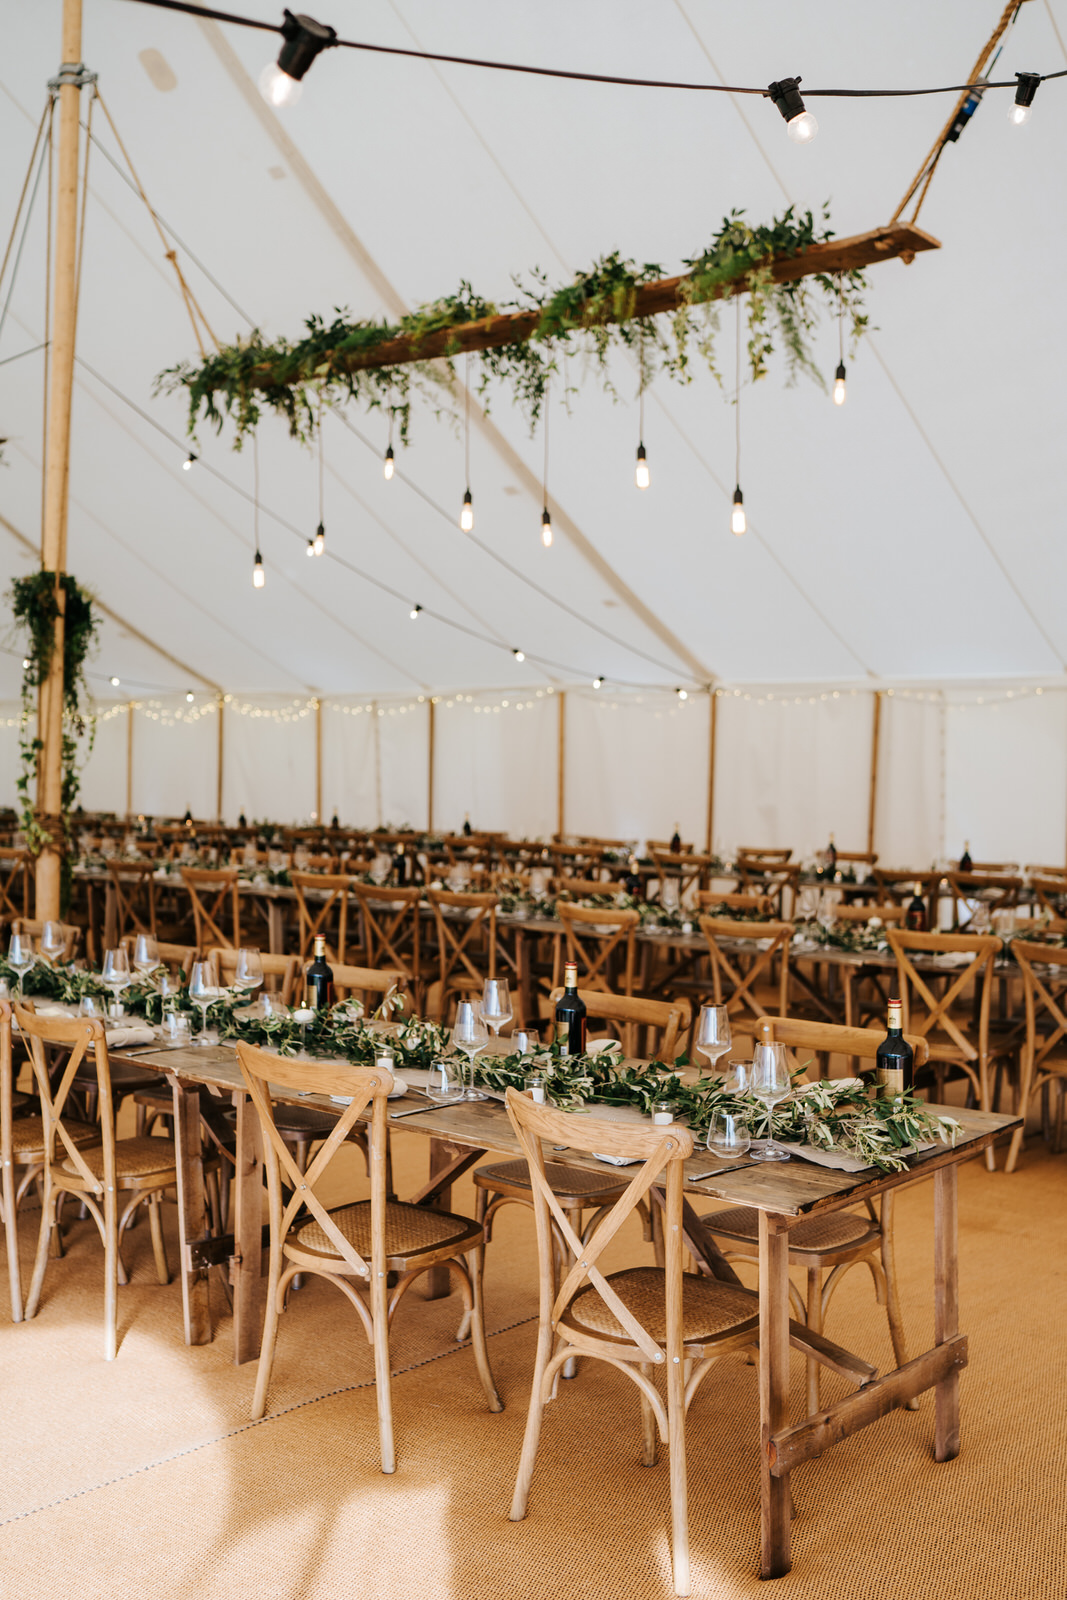 Rustic and charming table setup and decoration inside marquee in the garden of Hawarden Castle